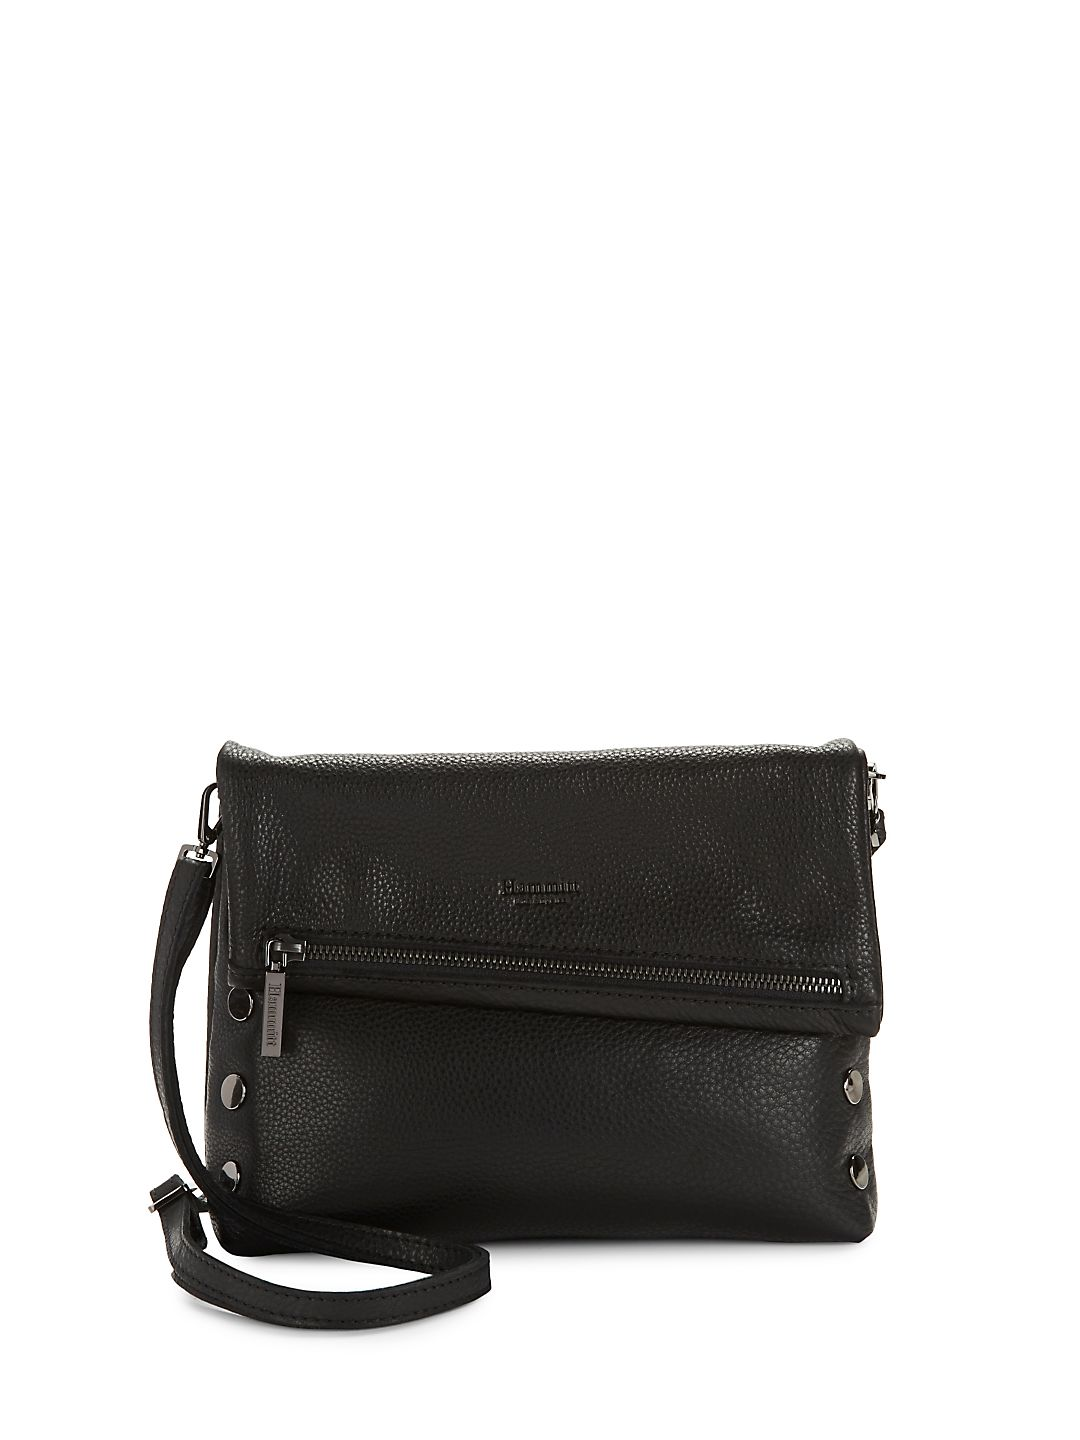 Vip Leather Crossbody Bag